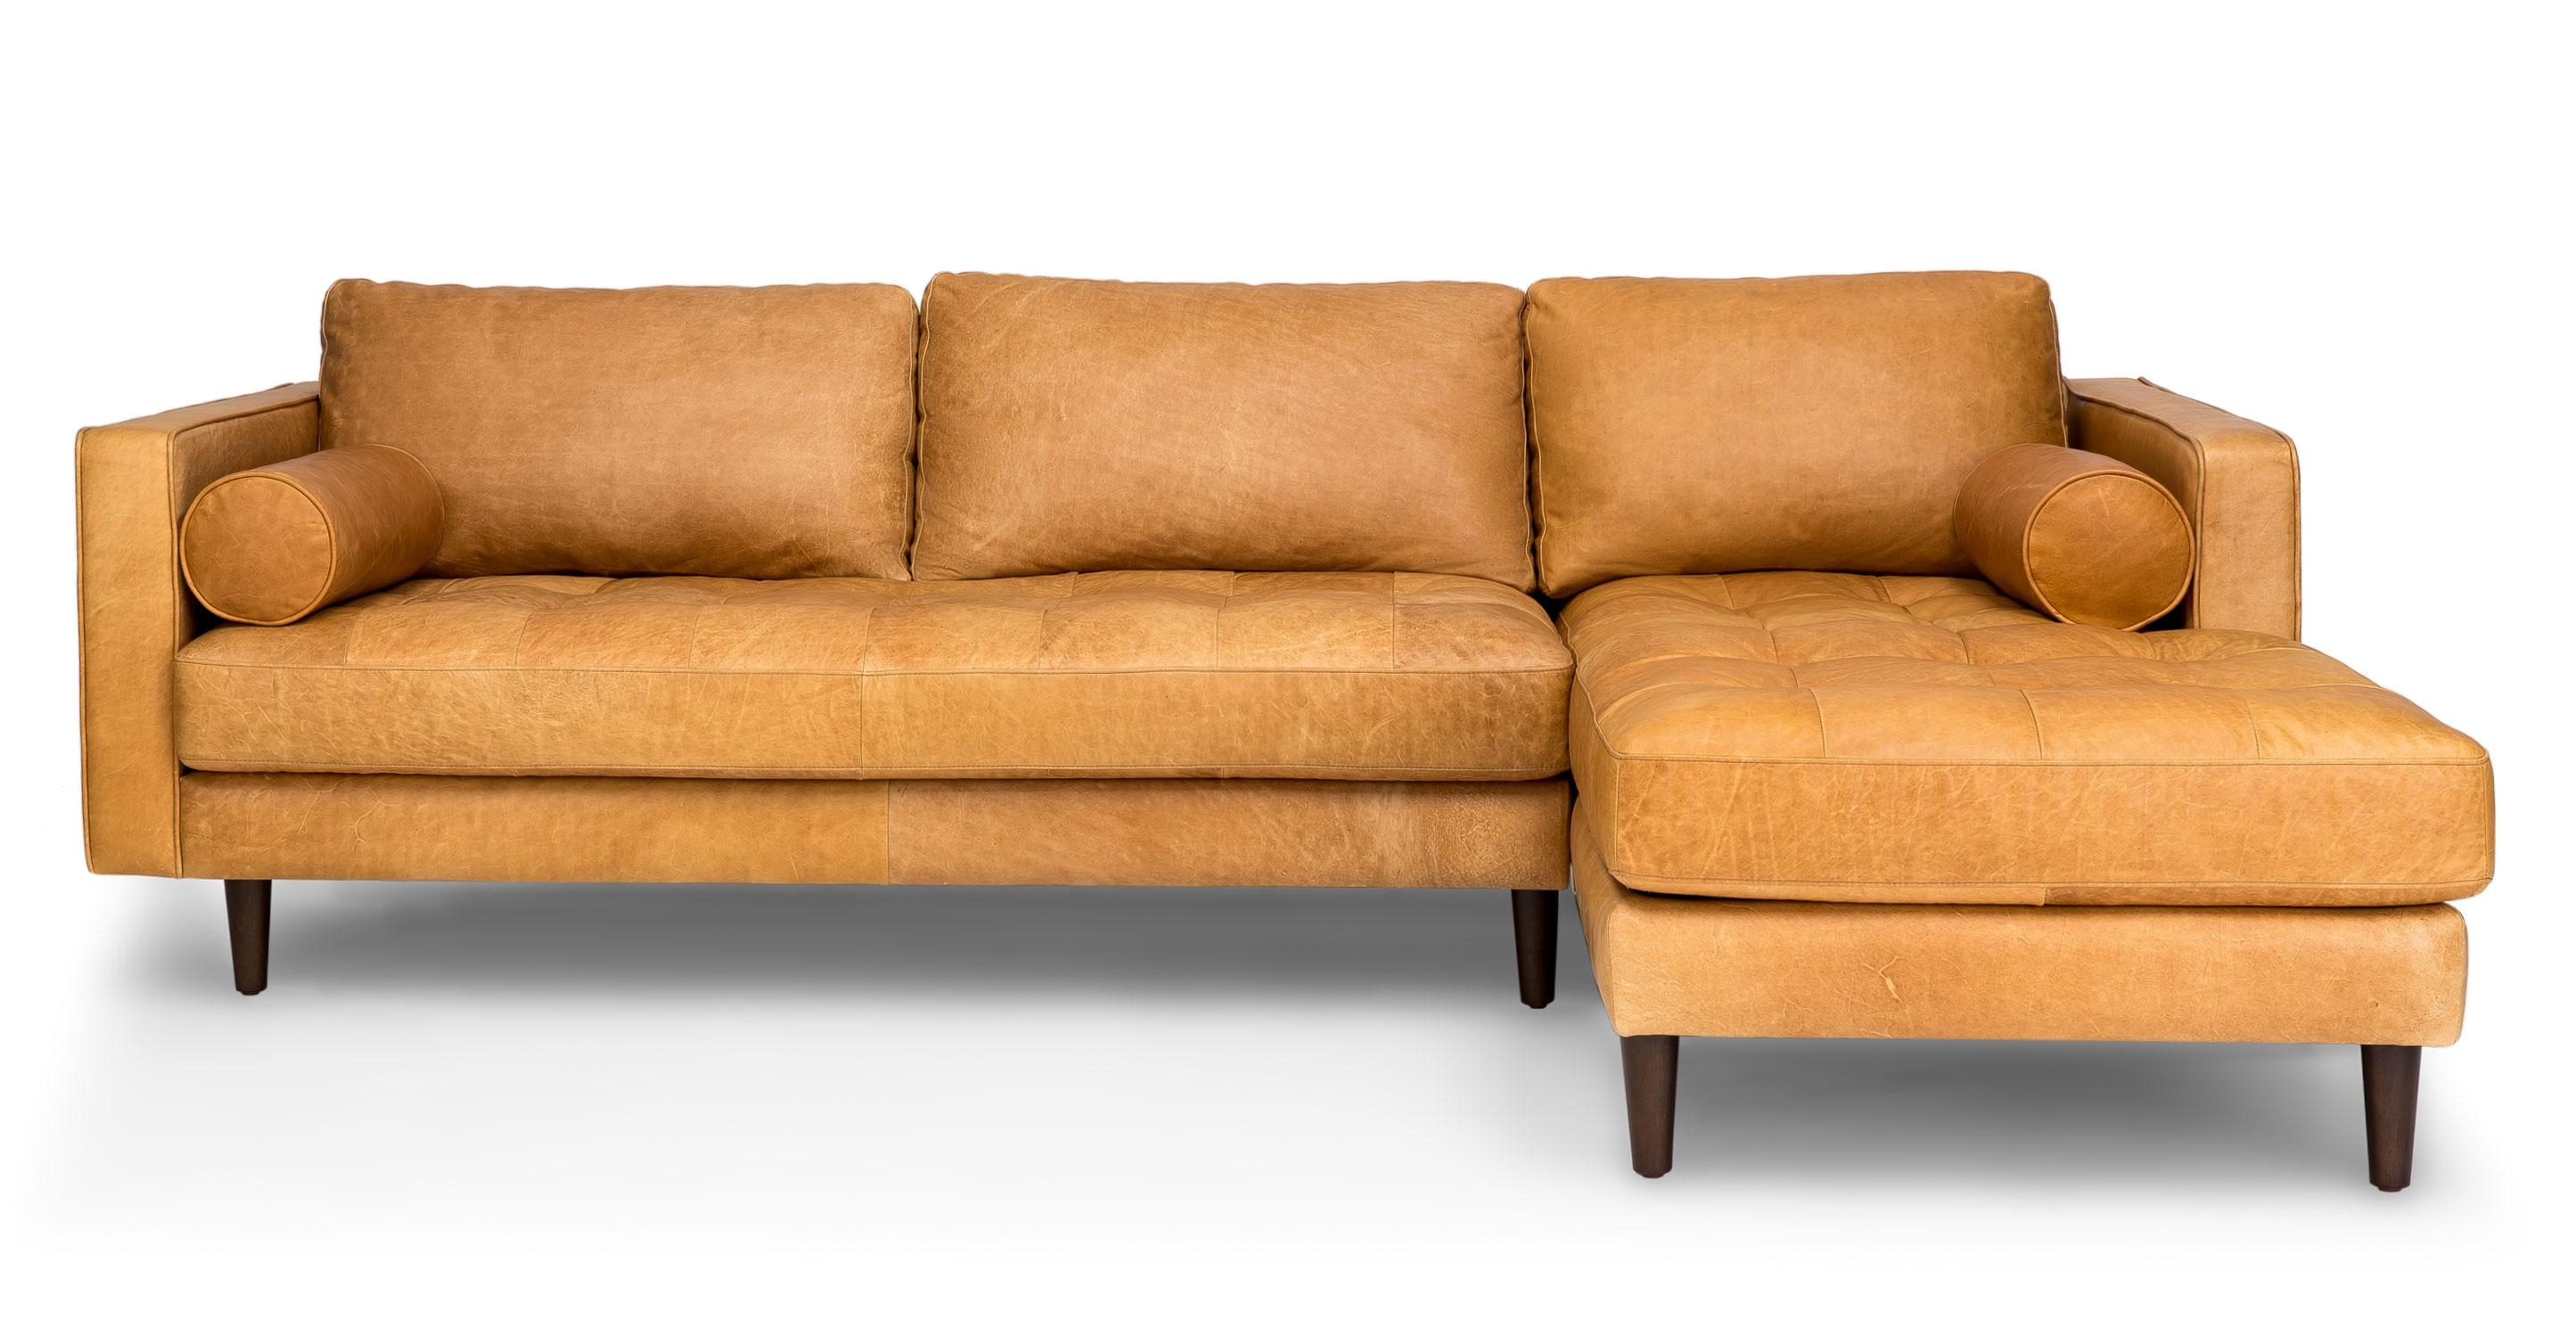 Sofas Center : Mid Century Modern Sectional Sofa Curved Style Intended For Mid Century Modern Leather Sectional (Image 17 of 20)